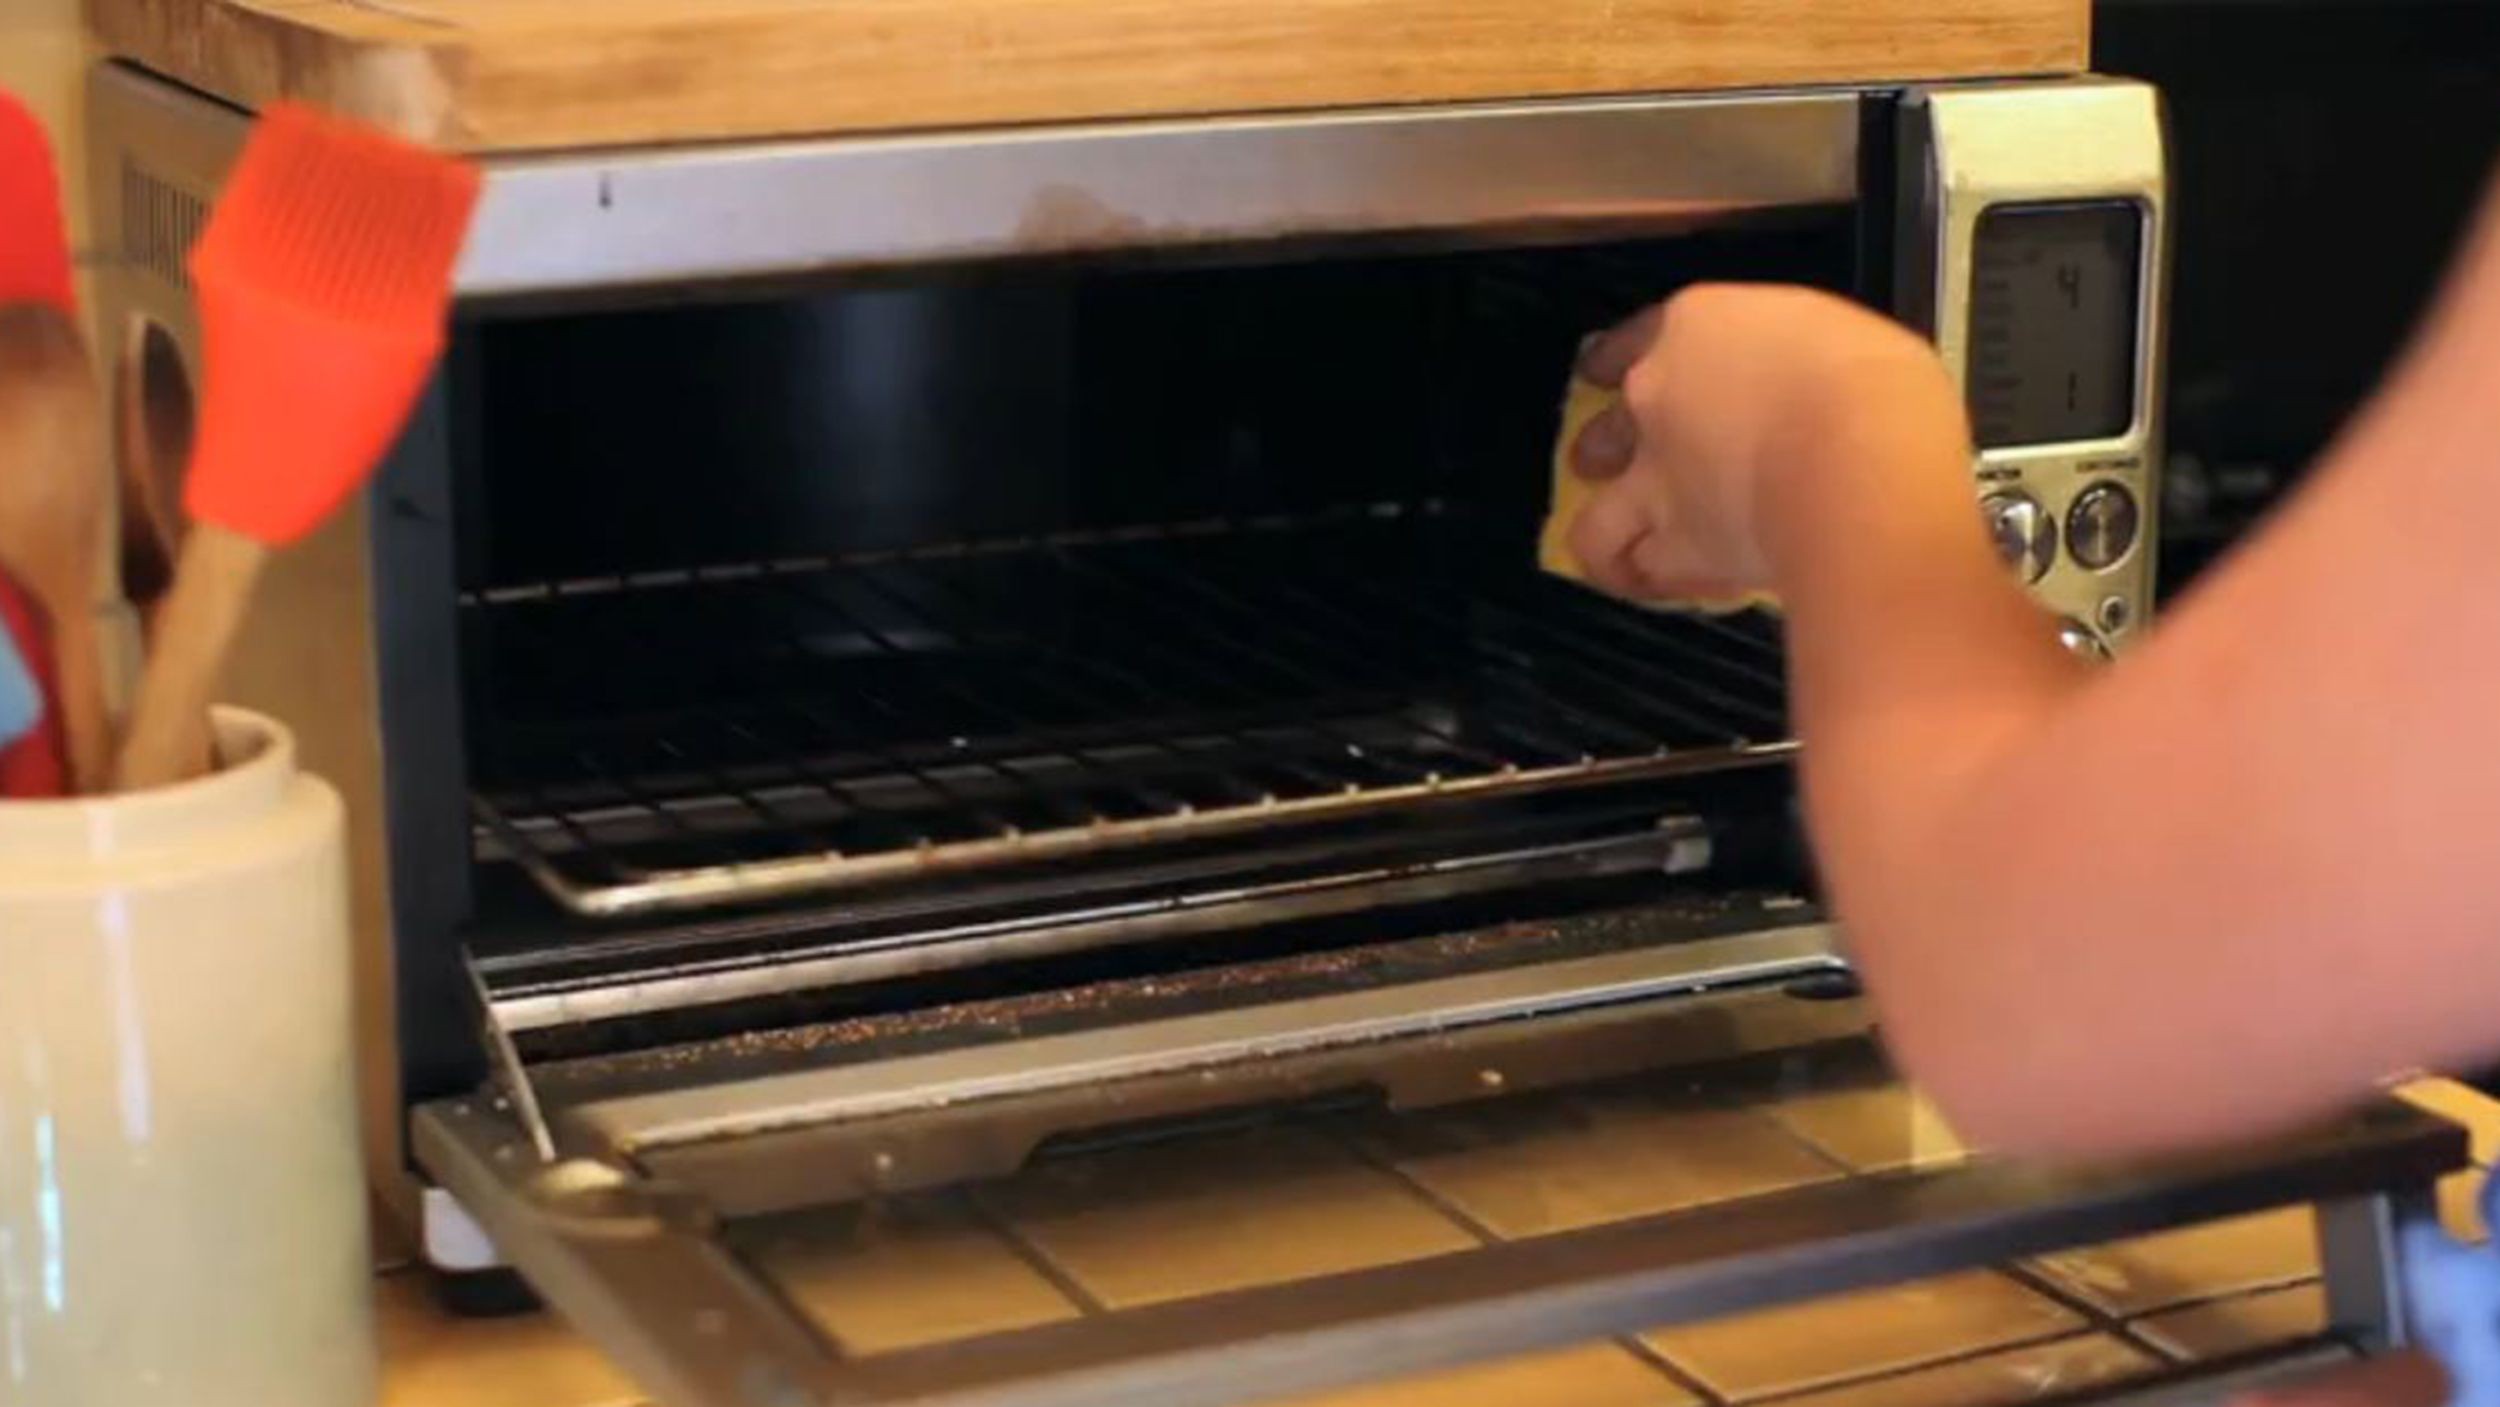 Tackle that toaster oven 3 clever cleaning hacks for your kitchen